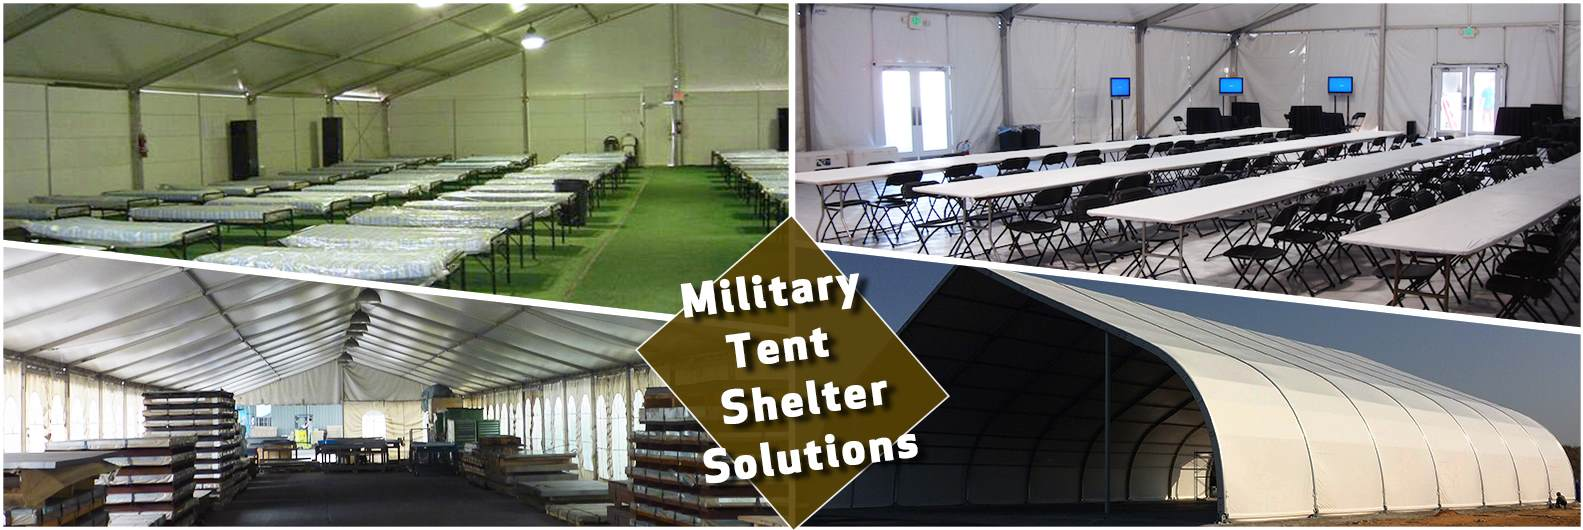 temporary-military-shelter-tents---clear-span-army-tents-solutions---warehouse-storage-tents-for-sale---temporary-soldier-housing-sleeping-quarters---waterproof-military-shelters